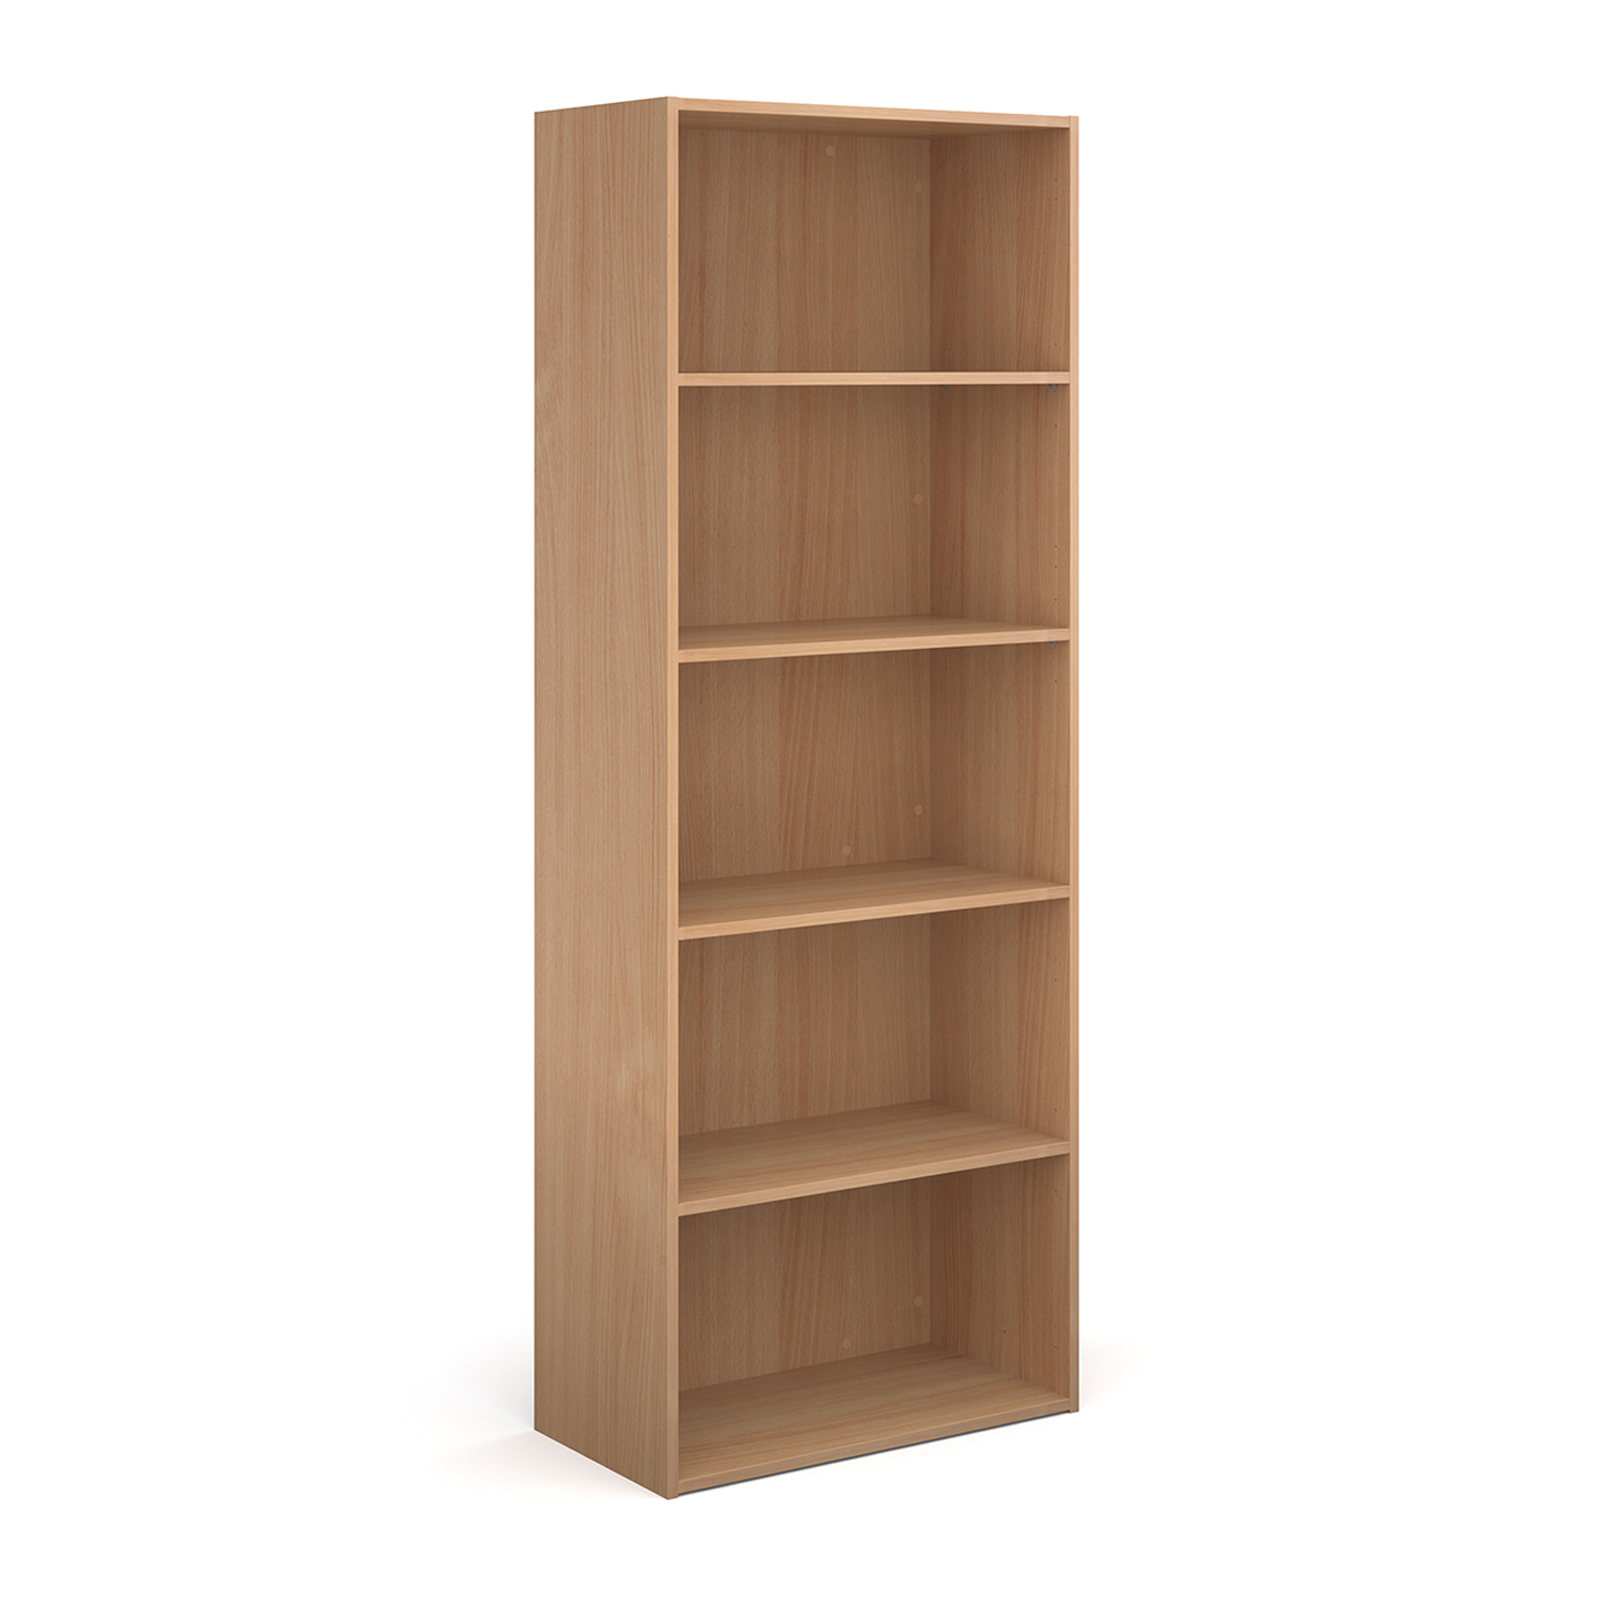 Contract bookcase with shelves